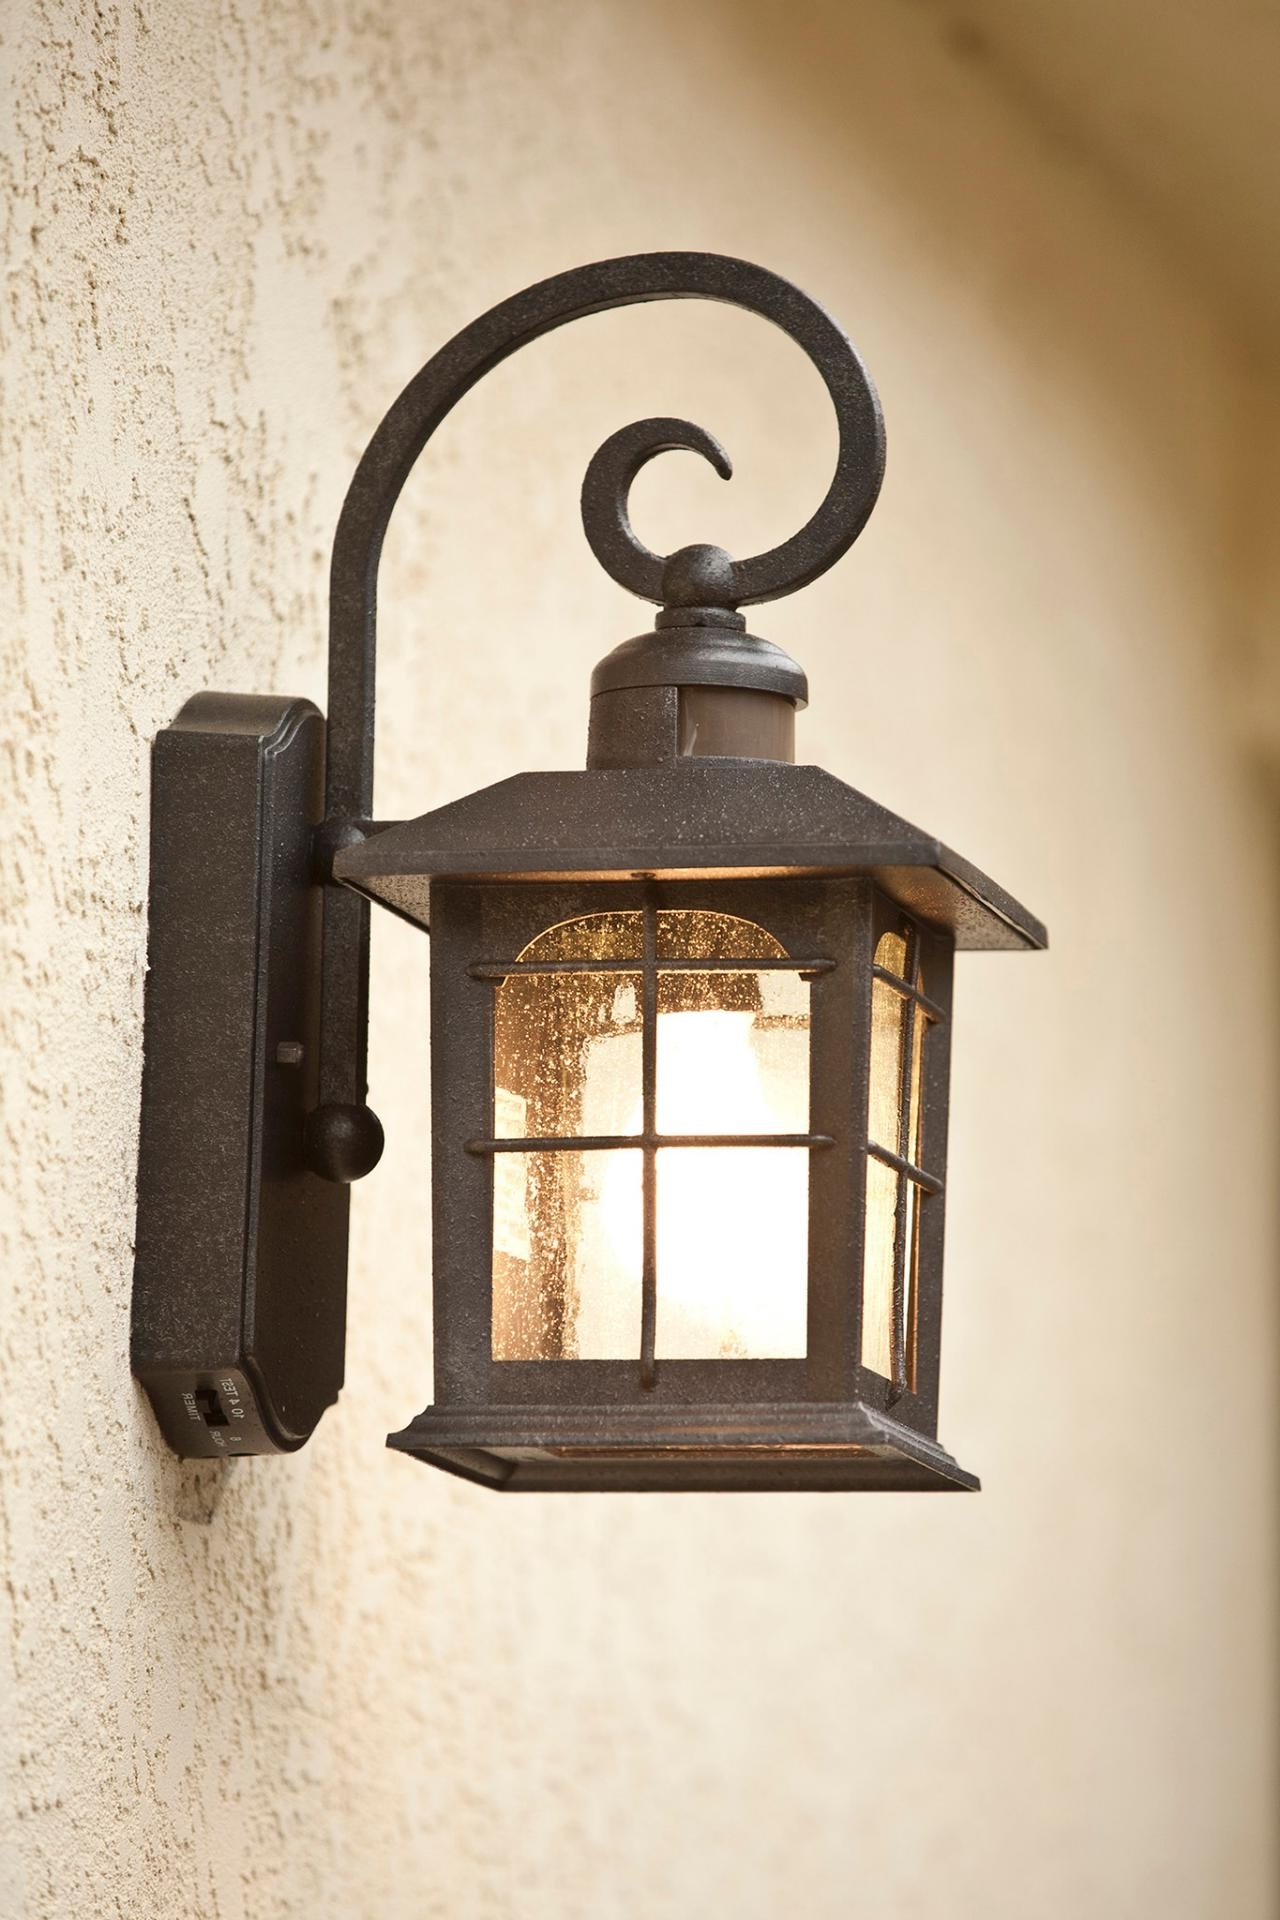 Exciting Lighting Outdoor Hanging Wall Attach Design Using Splendid With Popular Outdoor Hanging Wall Lanterns (View 3 of 20)